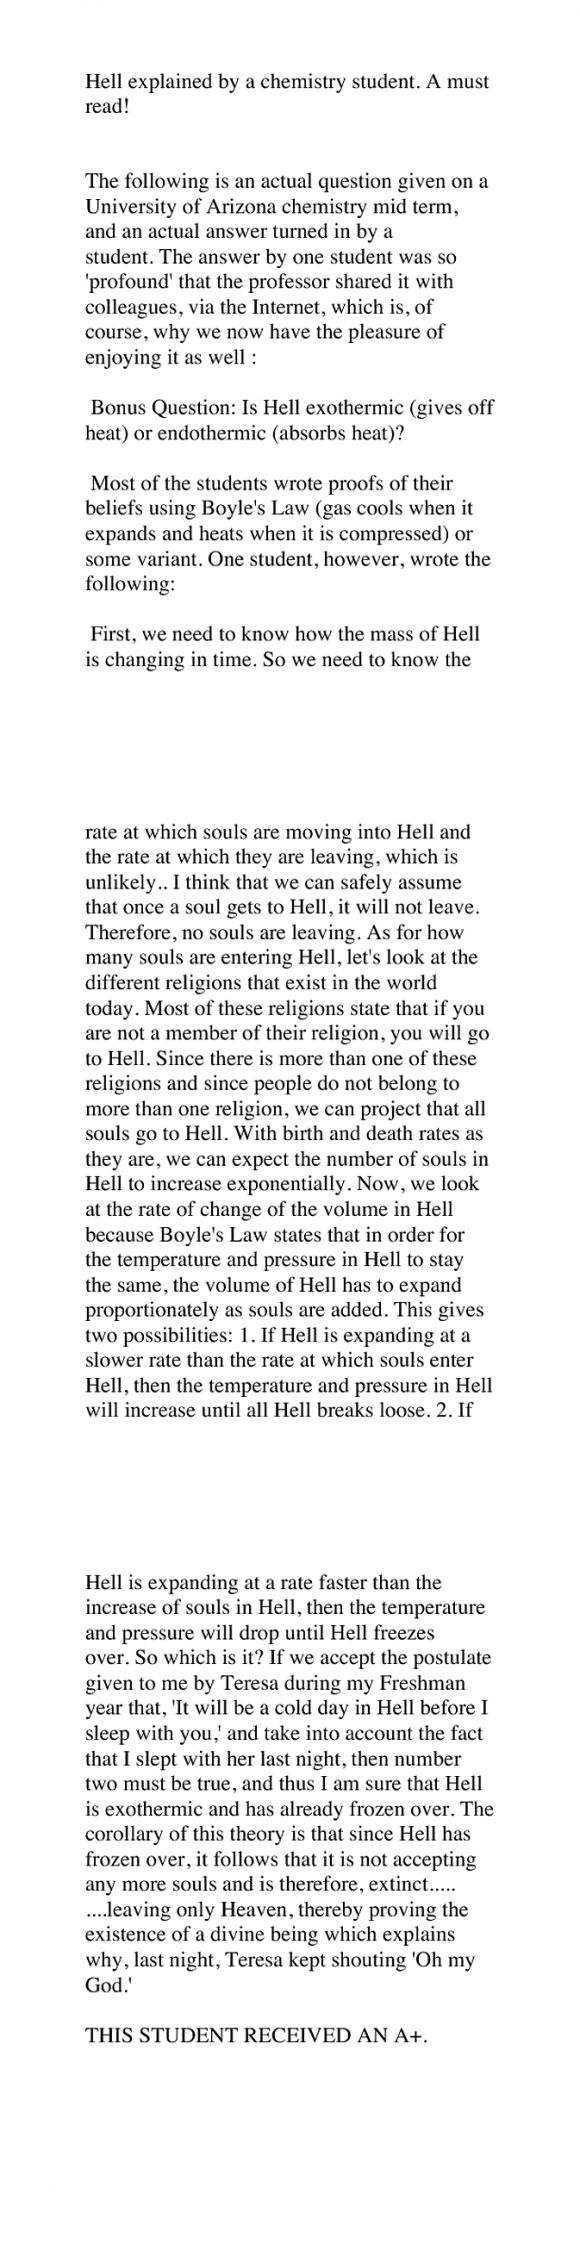 Hell: Exothermic or Endothermic?